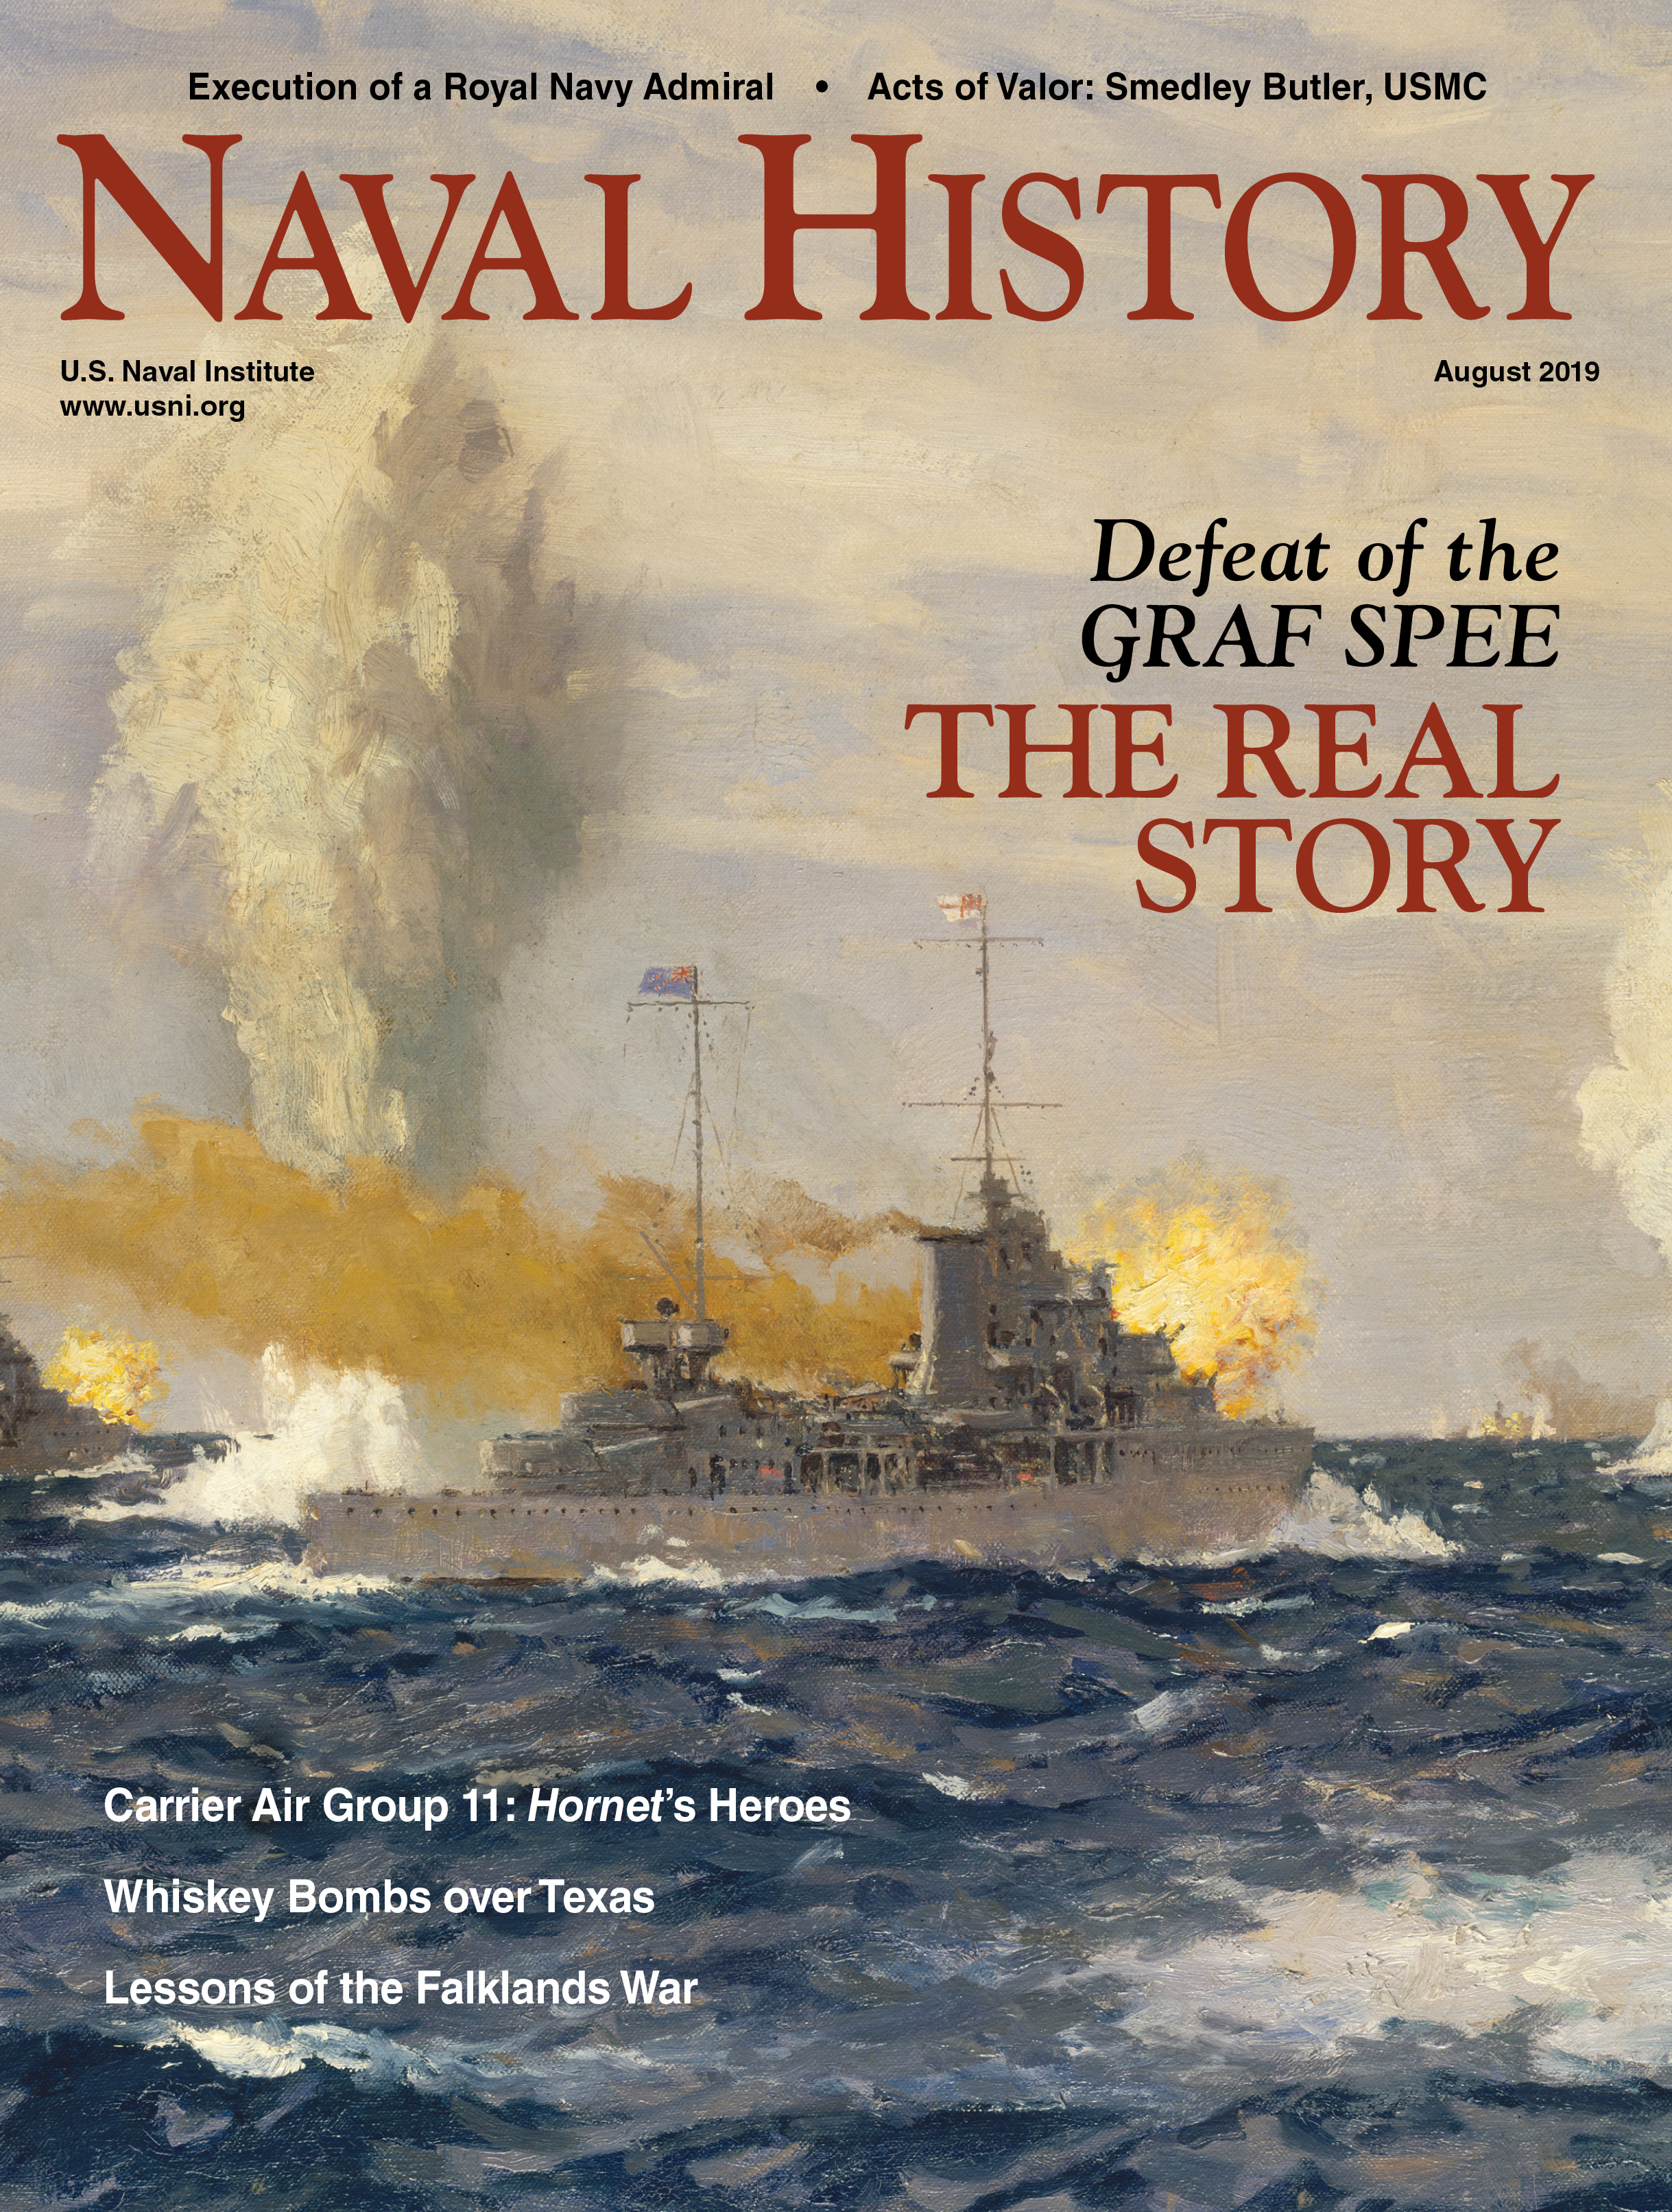 Naval History Magazine - August 2019, Volume 33, Number 4 Cover